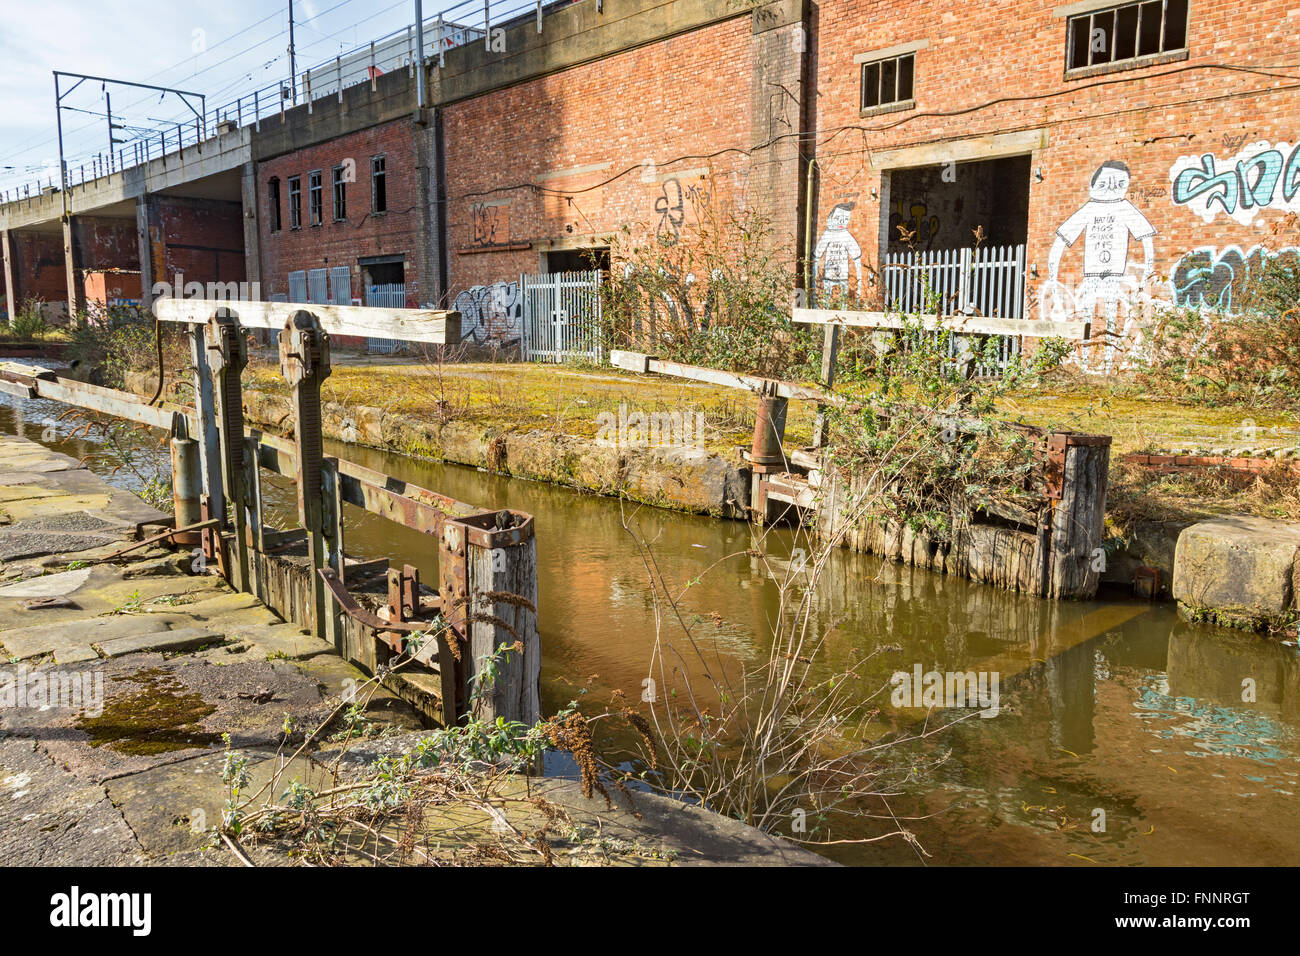 Derelict lock gates on Hulme Locks Junction Canal, St. Georges Island, Manchester, England, UK - Stock Image